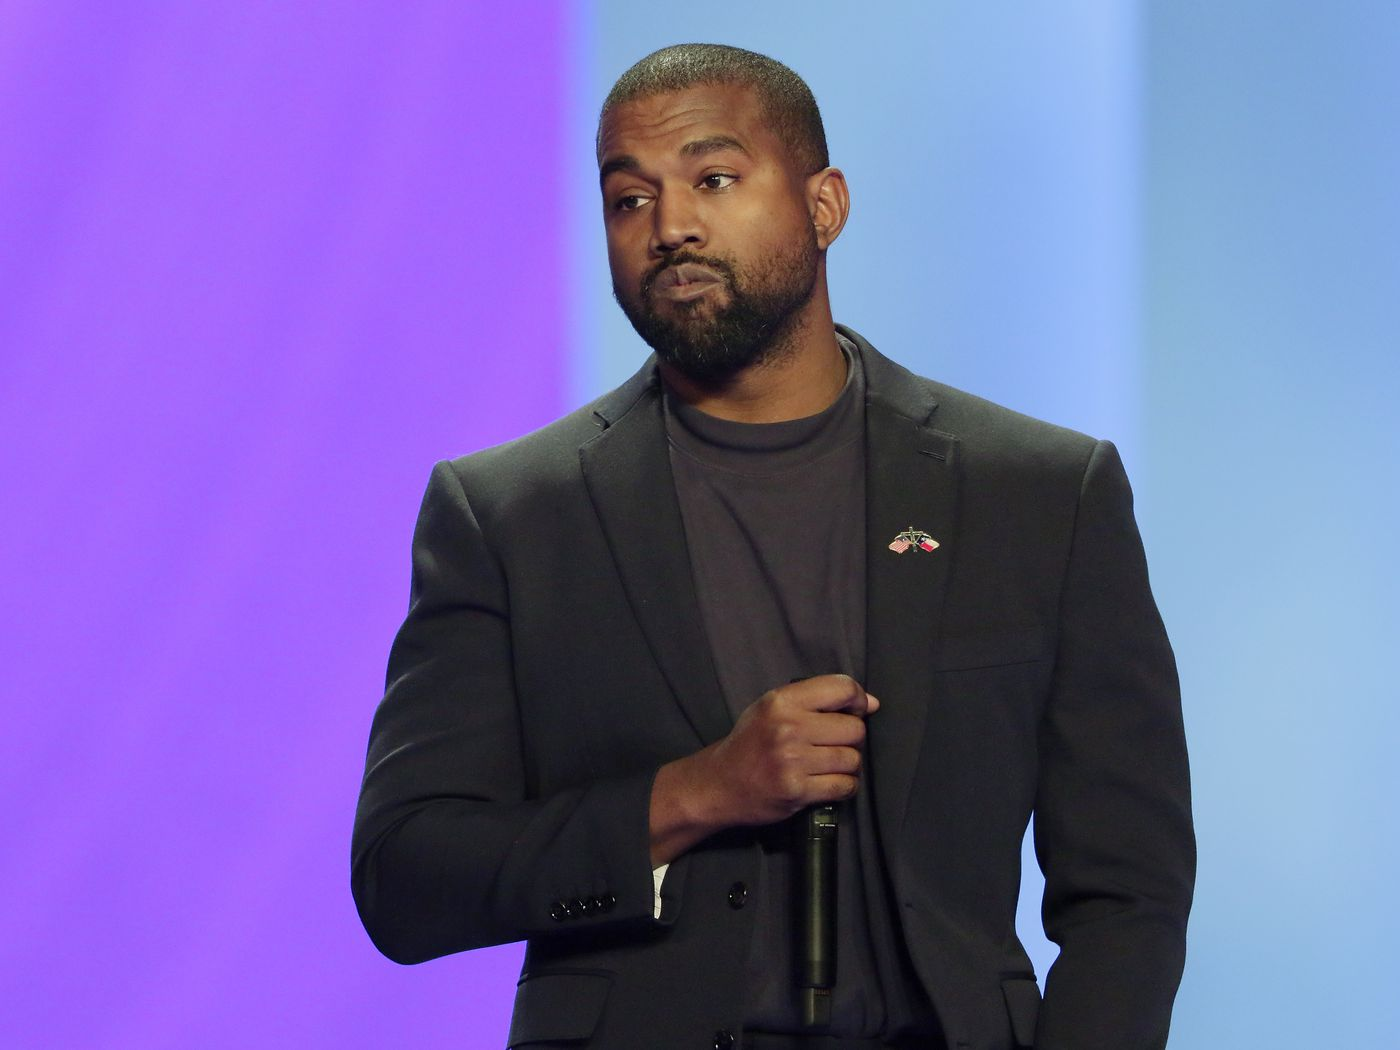 kanye-west-is-set-to-hold-the-first-presidential-campaign